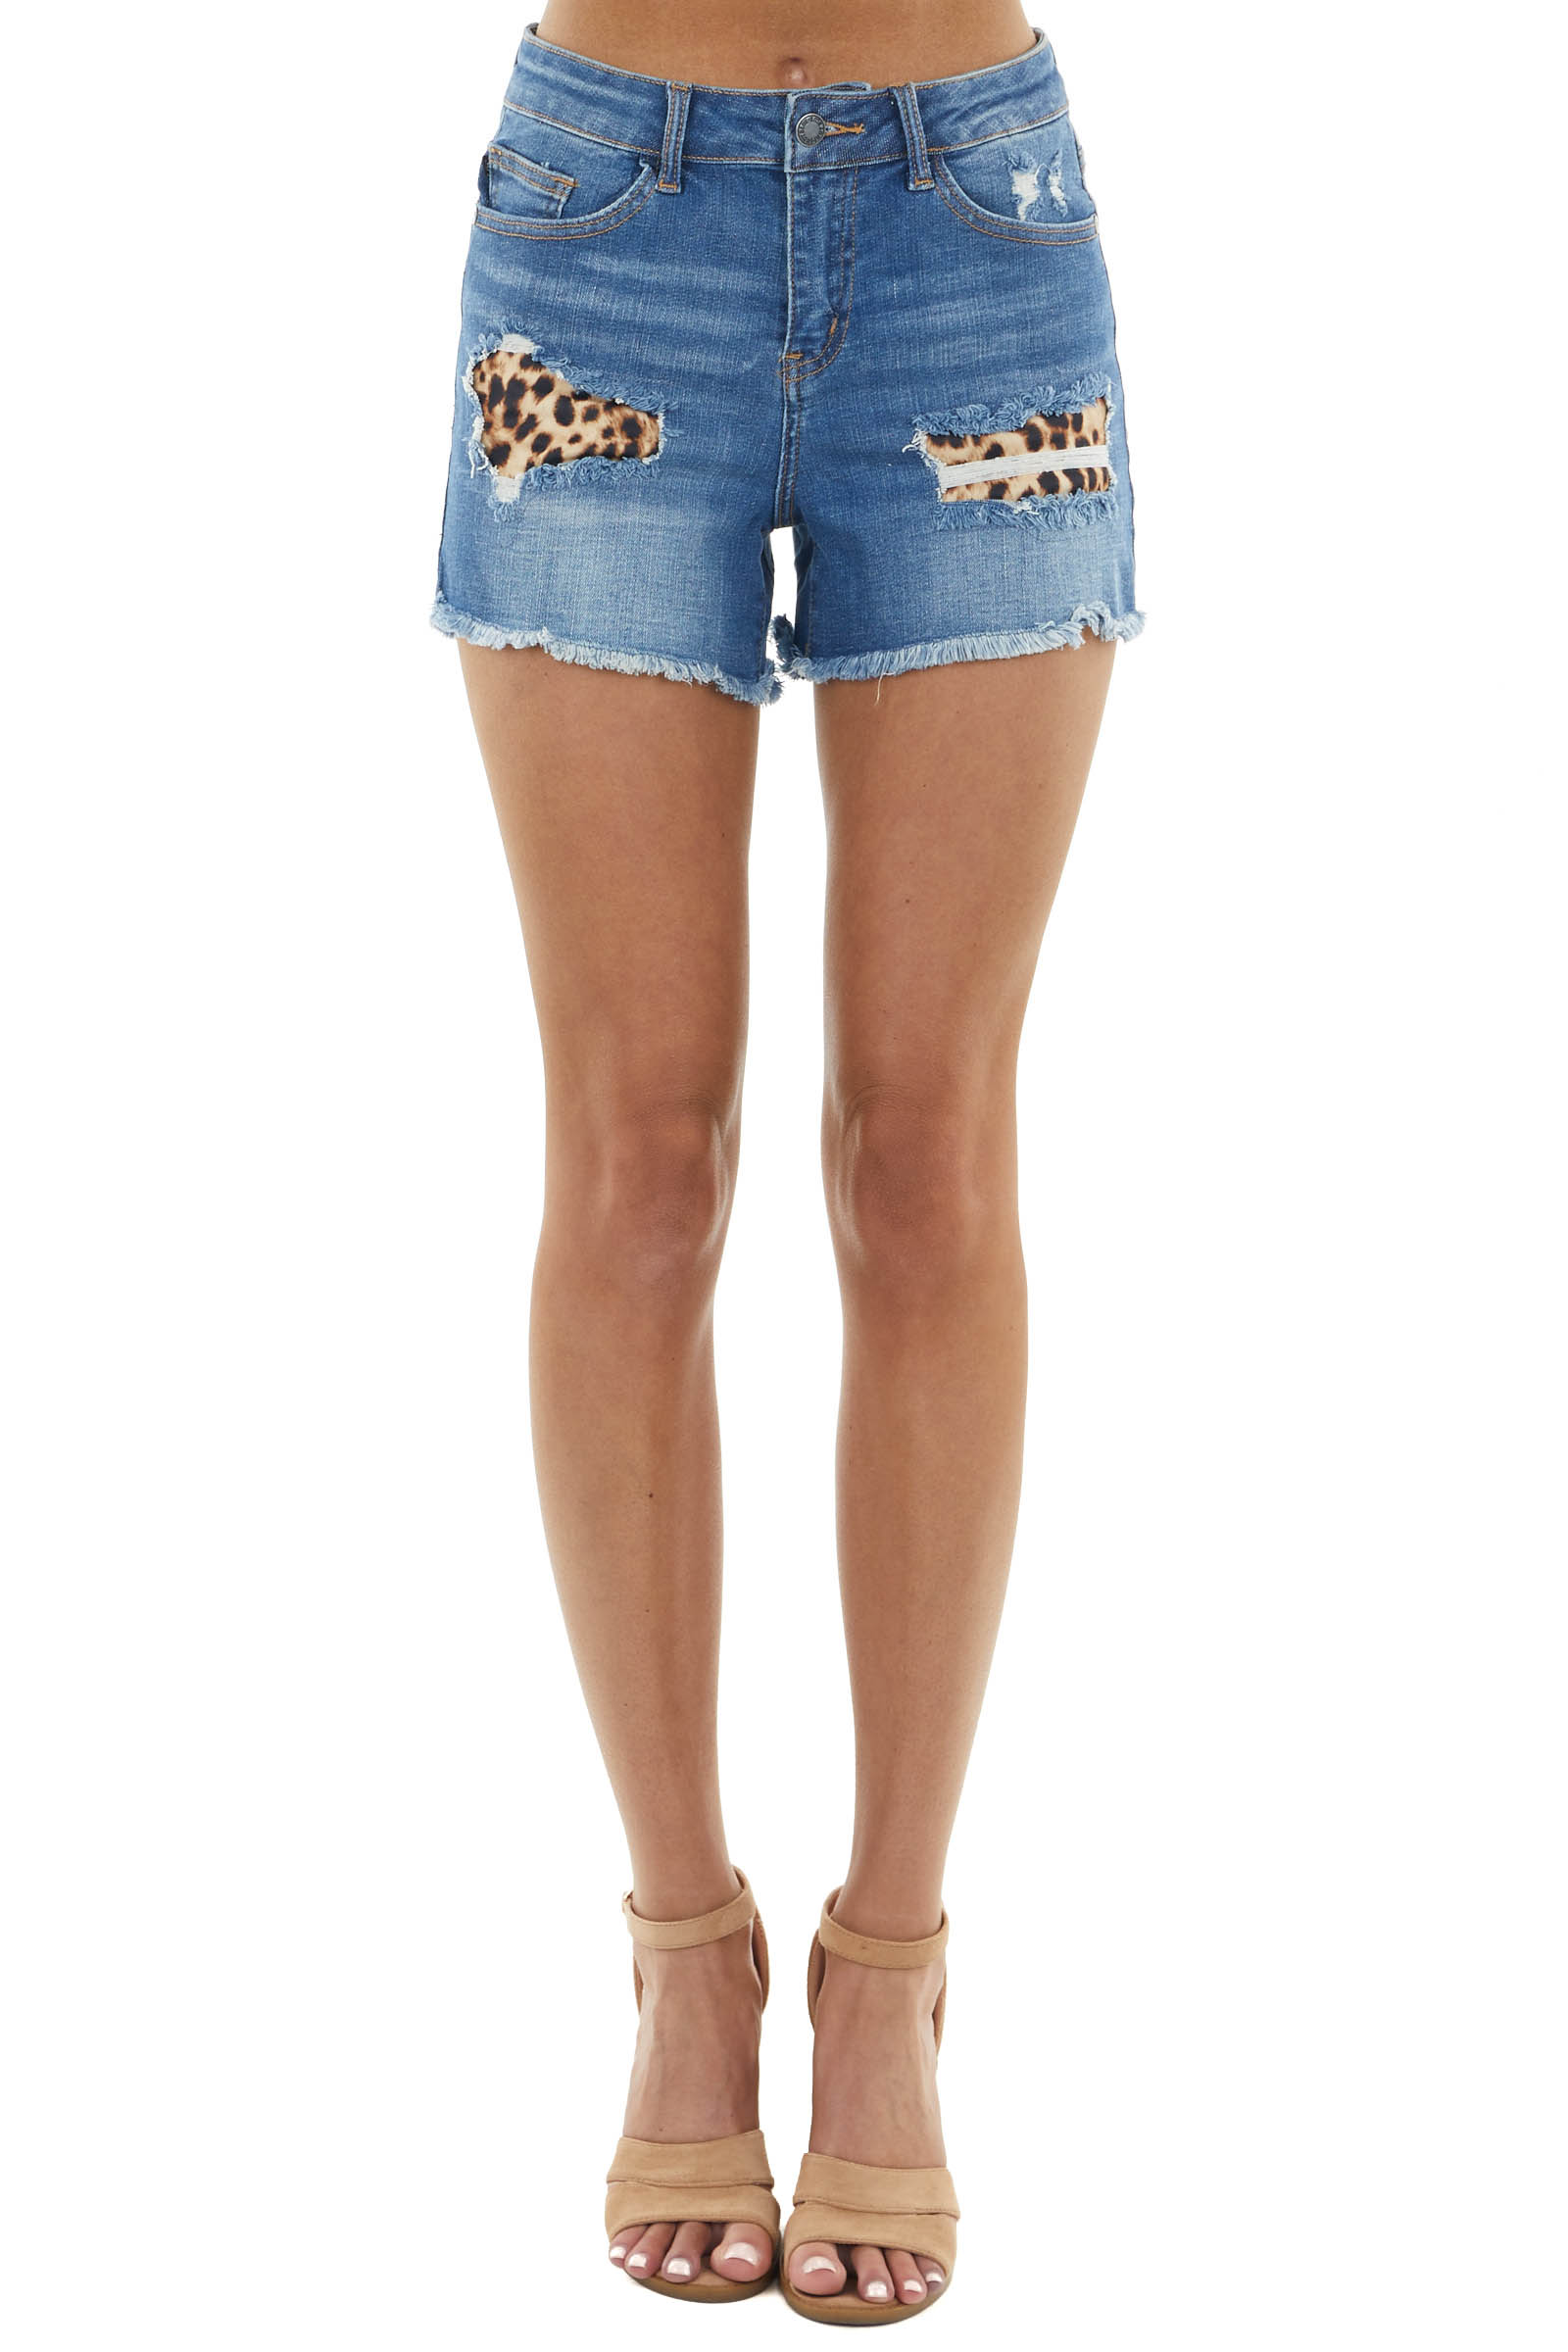 Dark Wash Distressed High Rise Shorts with Leopard Patches